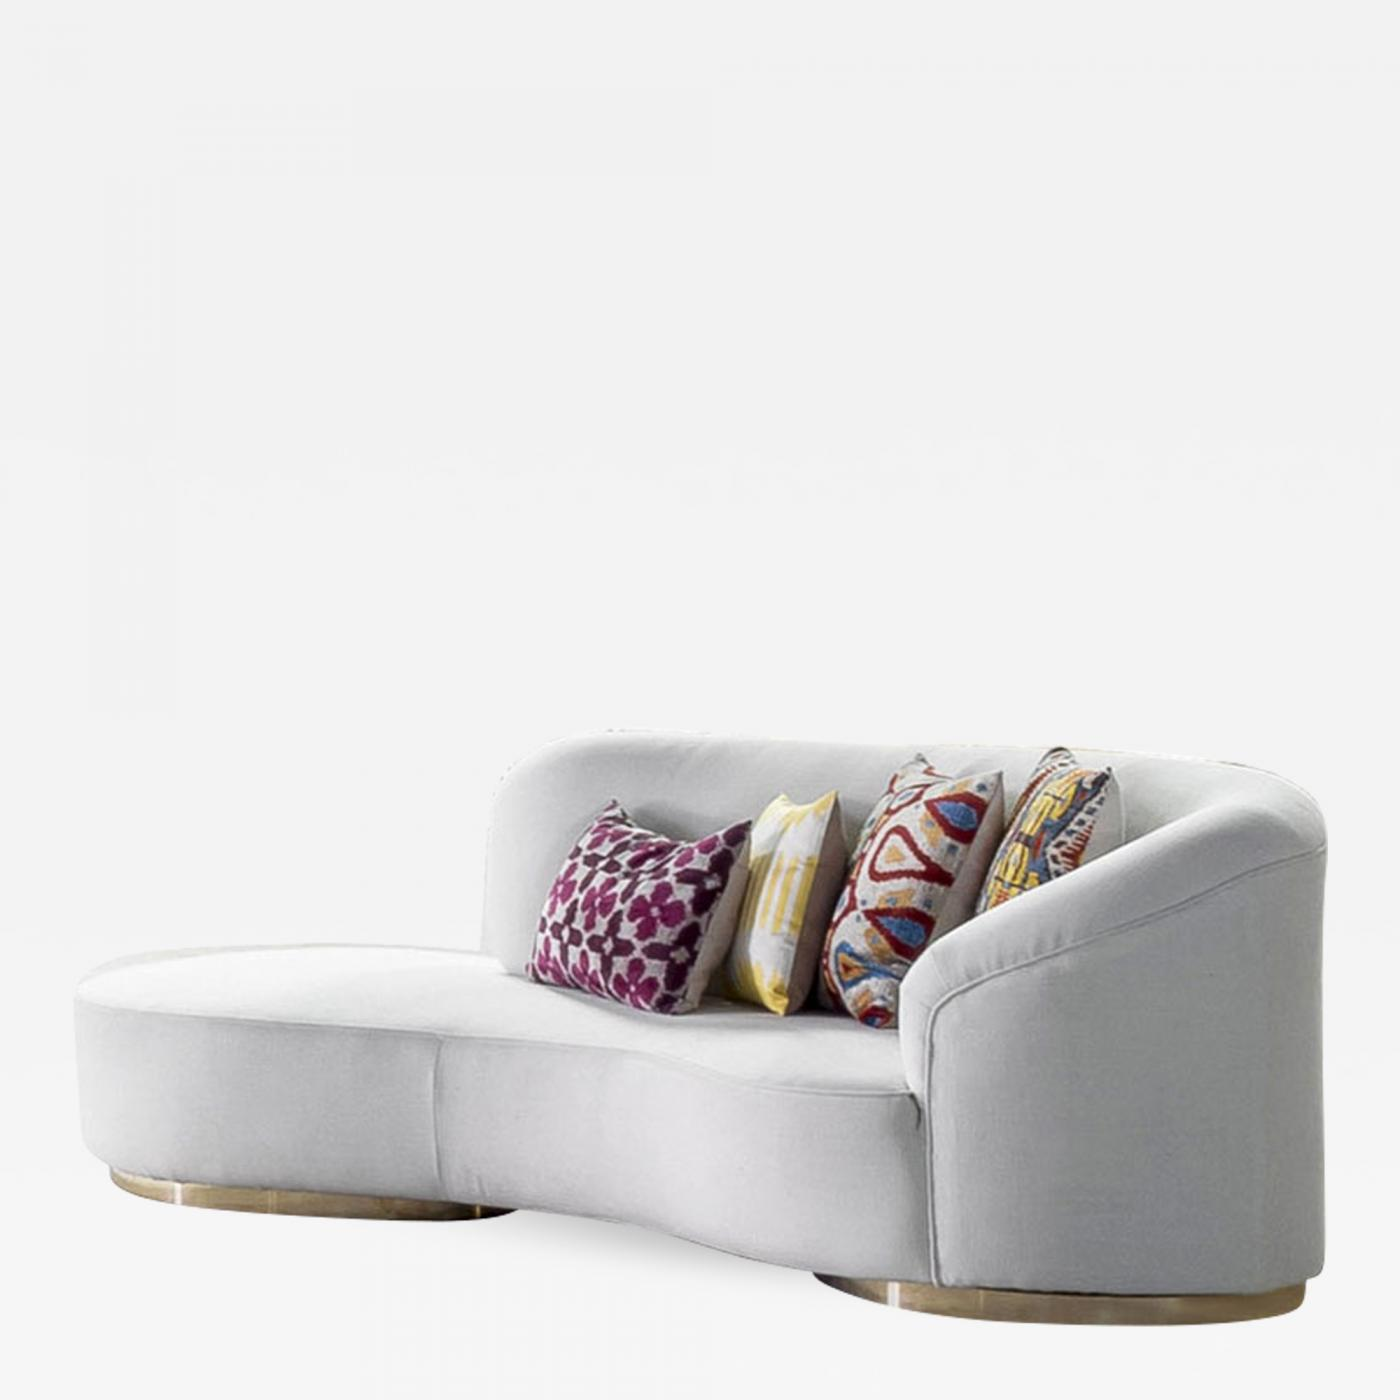 Marvelous Contemporary Curved White Linen And Brass Italian Sofa Caraccident5 Cool Chair Designs And Ideas Caraccident5Info